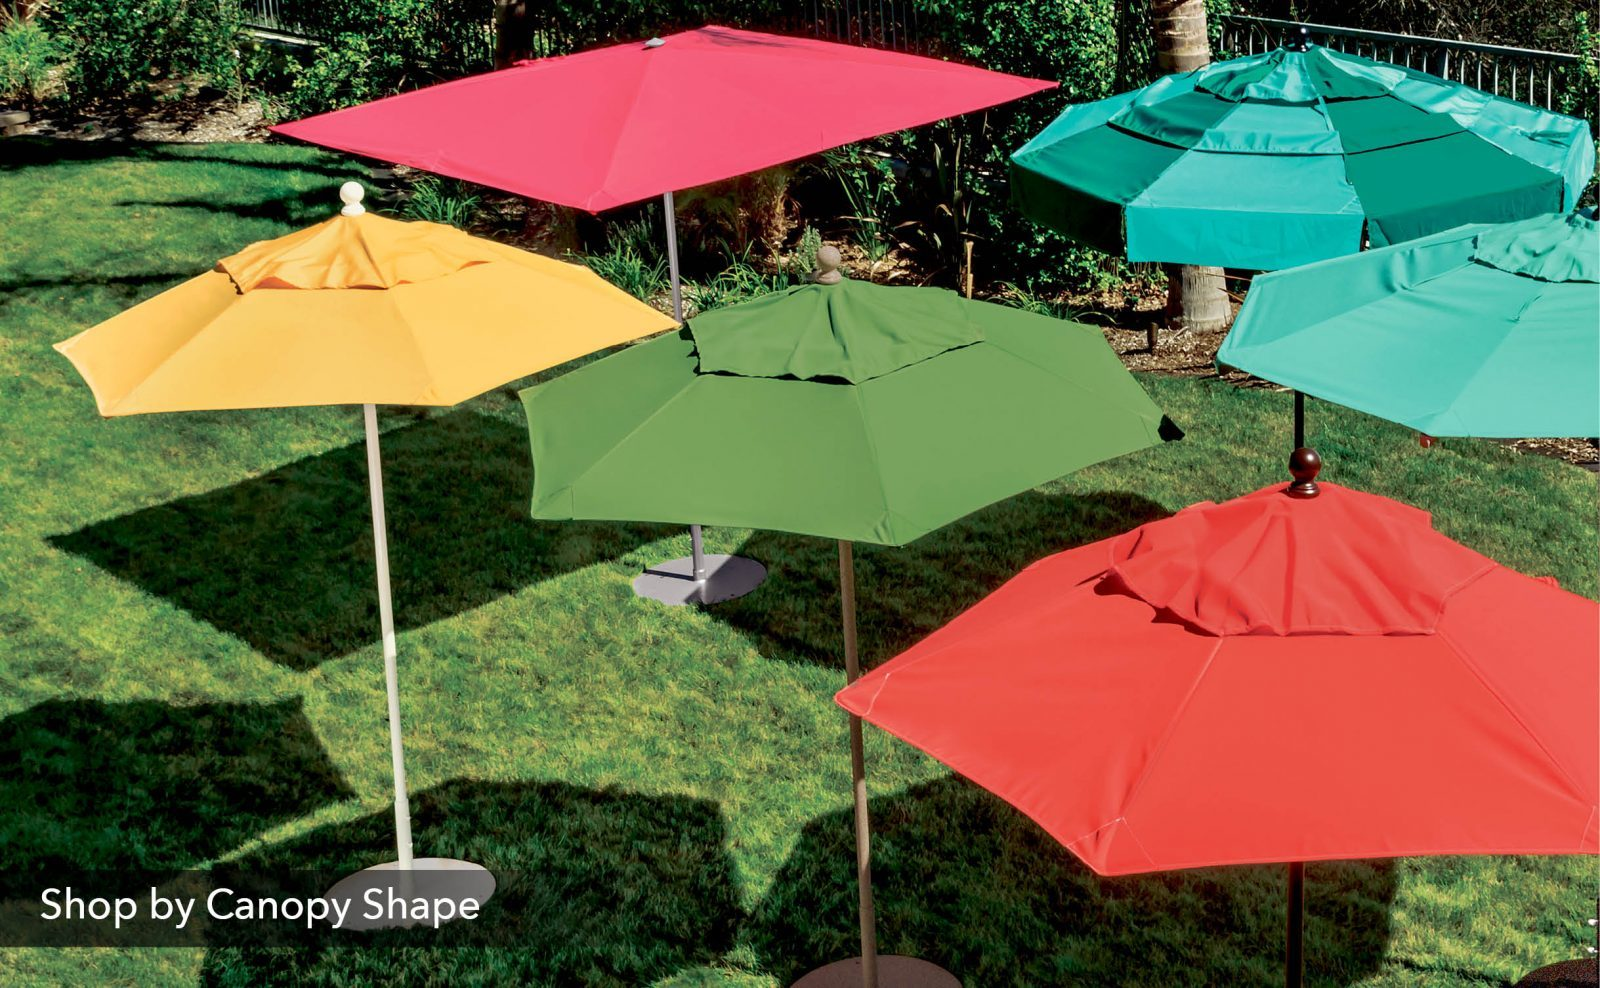 Shop by Canopy Shape